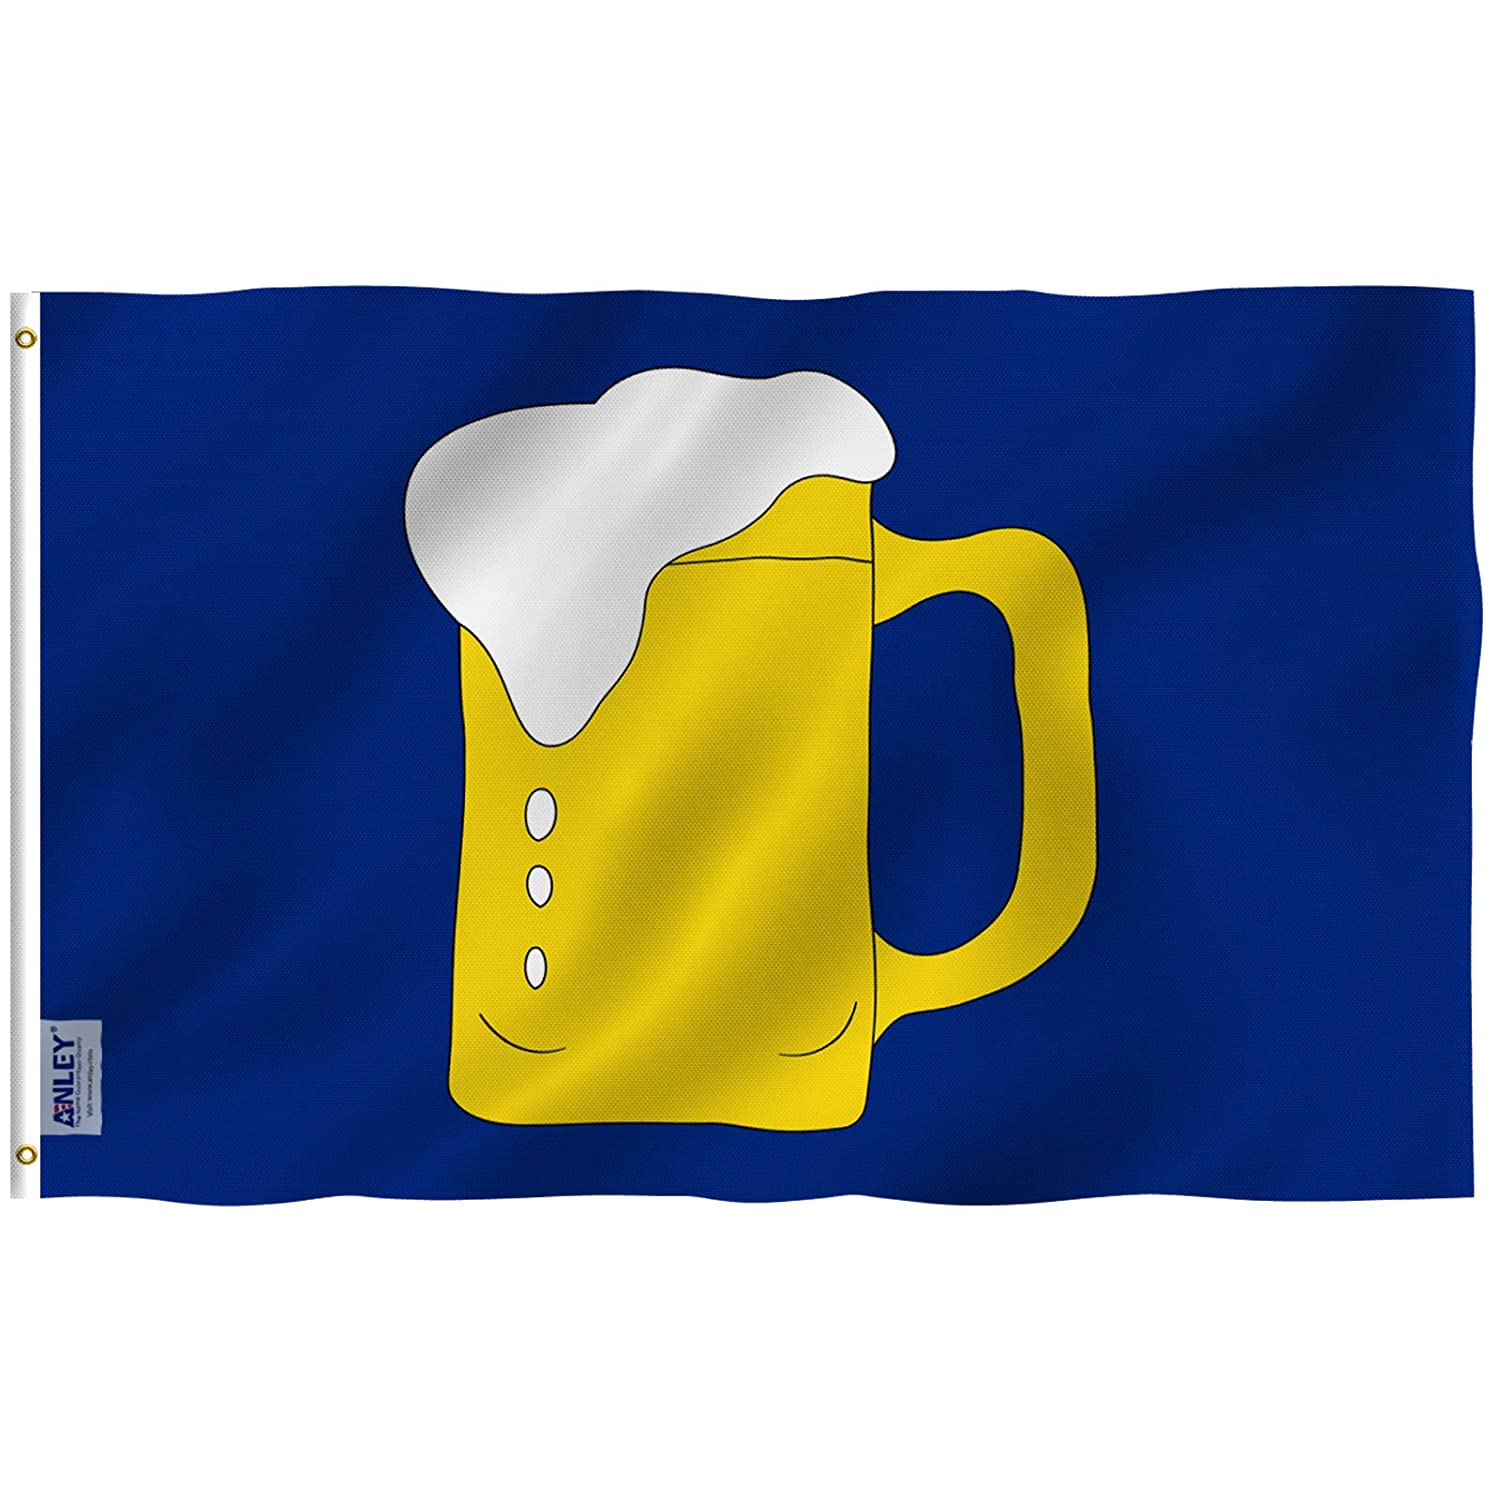 Anley Fly Breeze 3x5 Ft Beer Mug Flag - Vivid Color and UV Fade Resistant - Double Stitched - Beer Mug BM Advertising or Service Businesses Flags Polyester with Brass Grommets 3 X 5 Ft